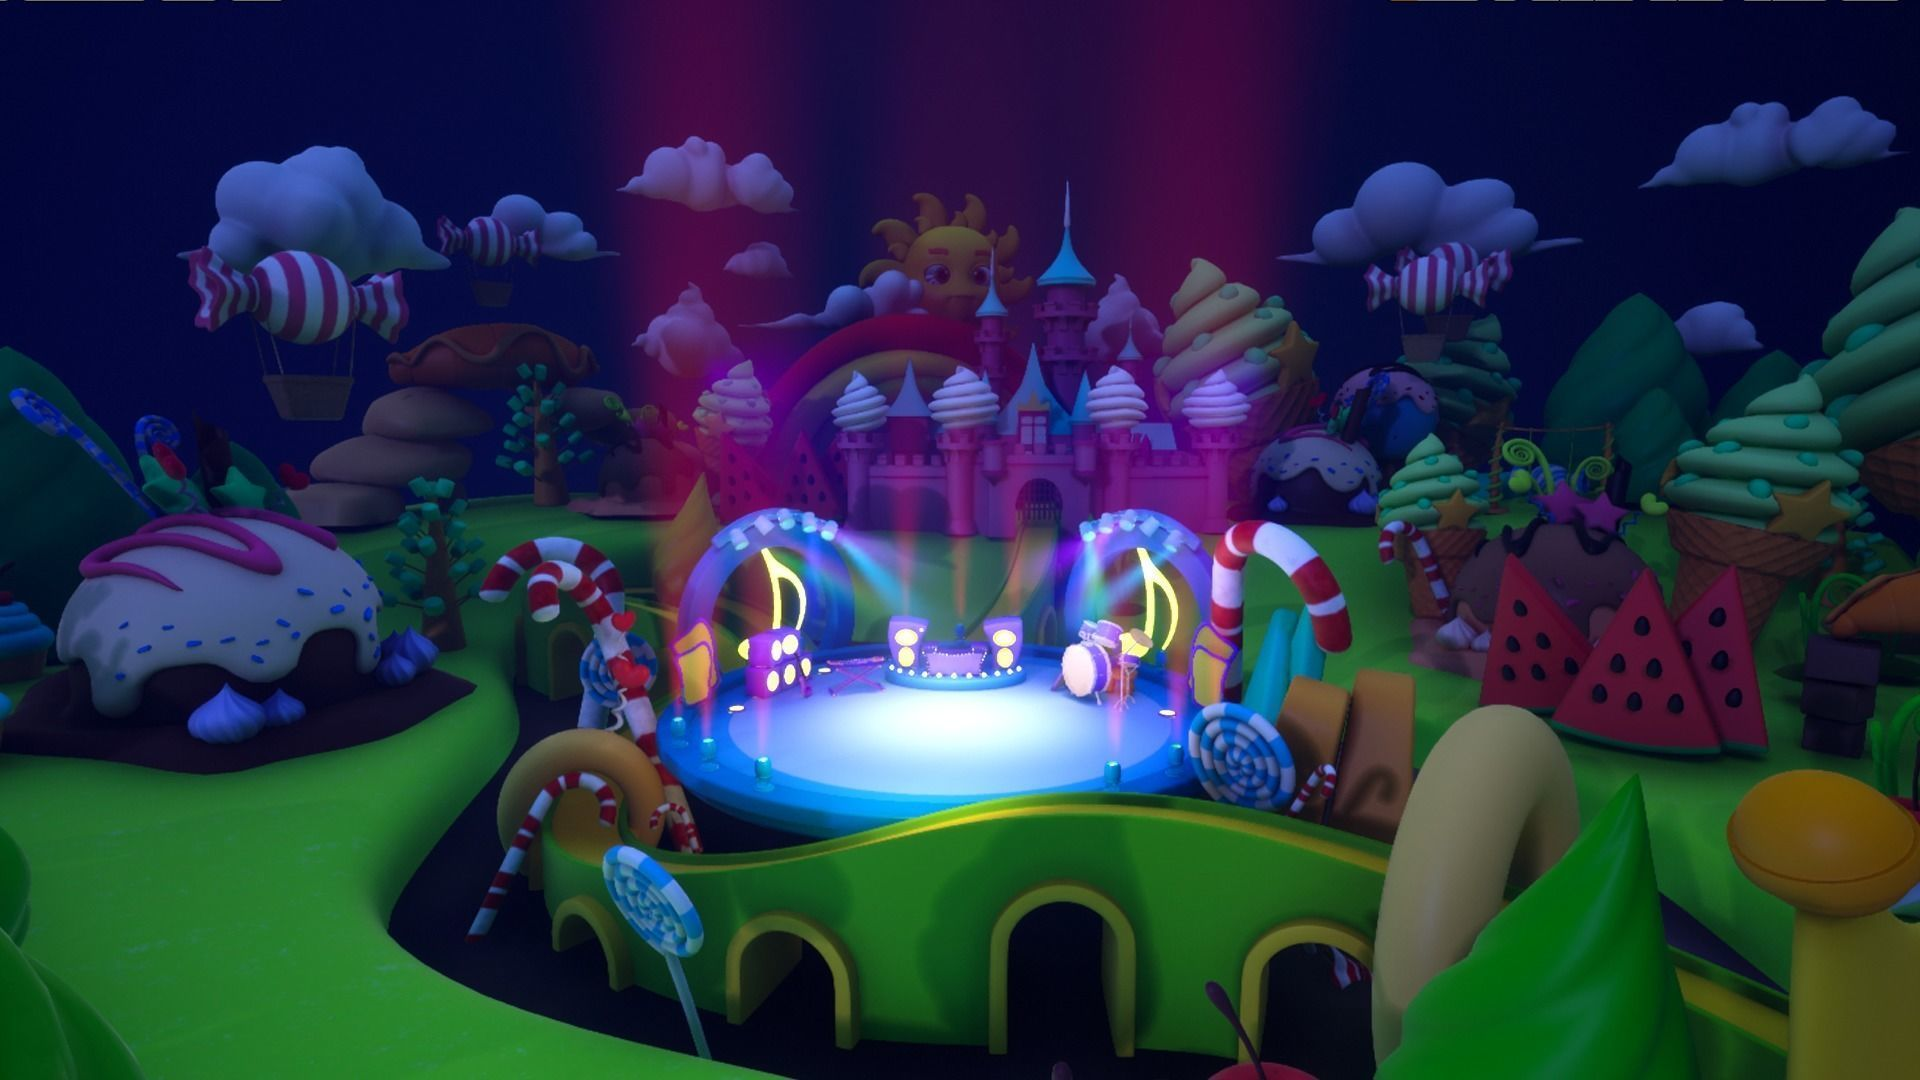 Asset UE4 - Cartoons - Background - Stage- Hight Poly